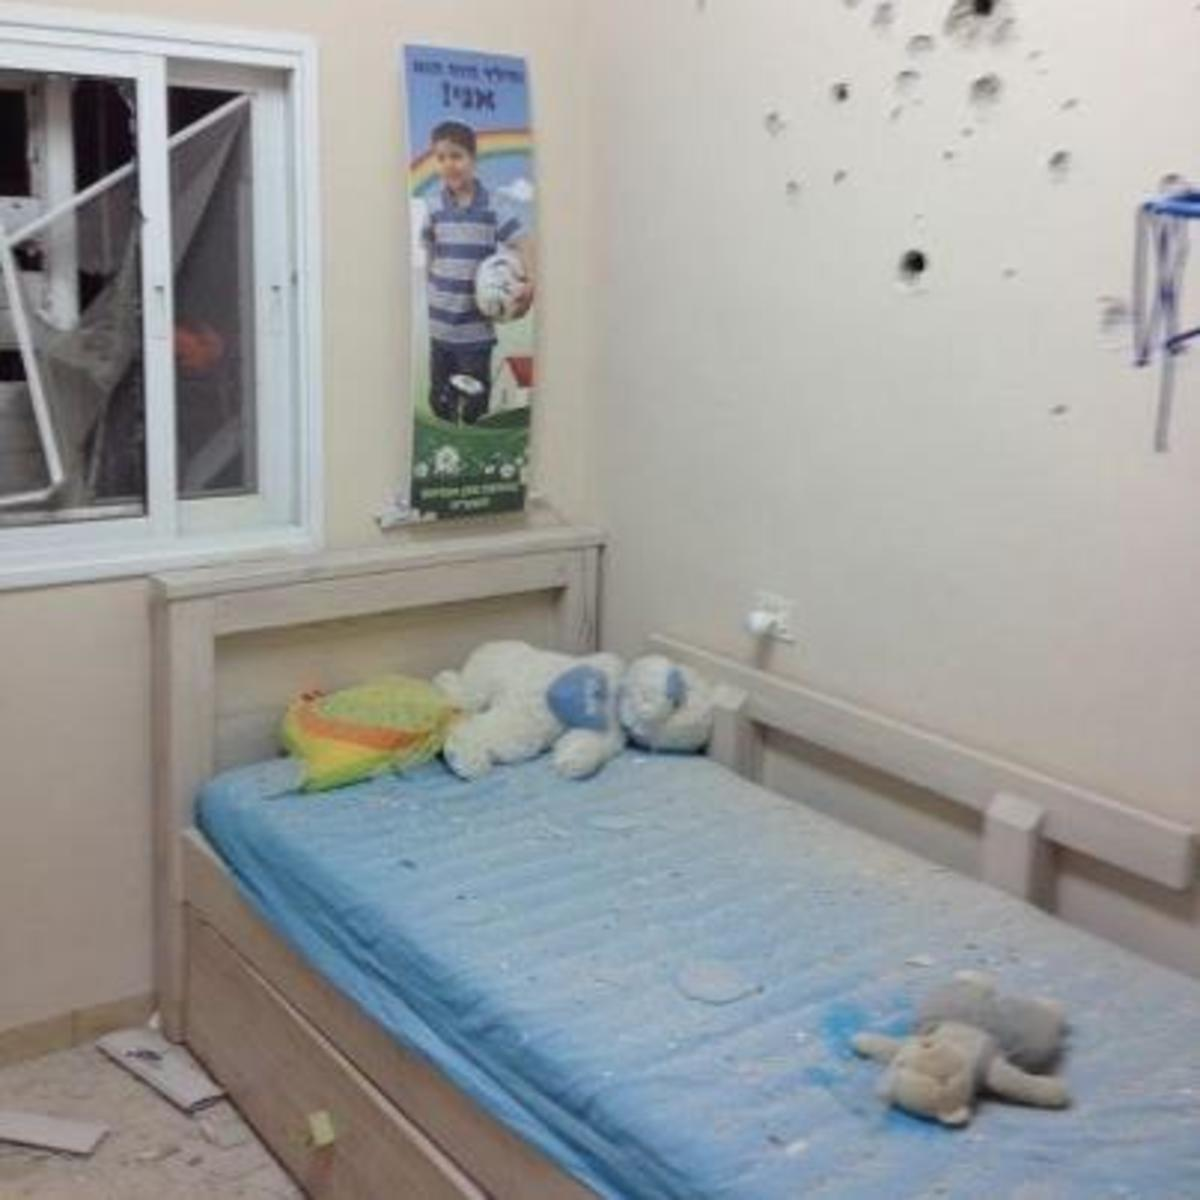 A child's bedroom in Israel, riddled with shrapnel from a missile launched by the Iranian funded Hamas government in Gaza City, in November, 2012.